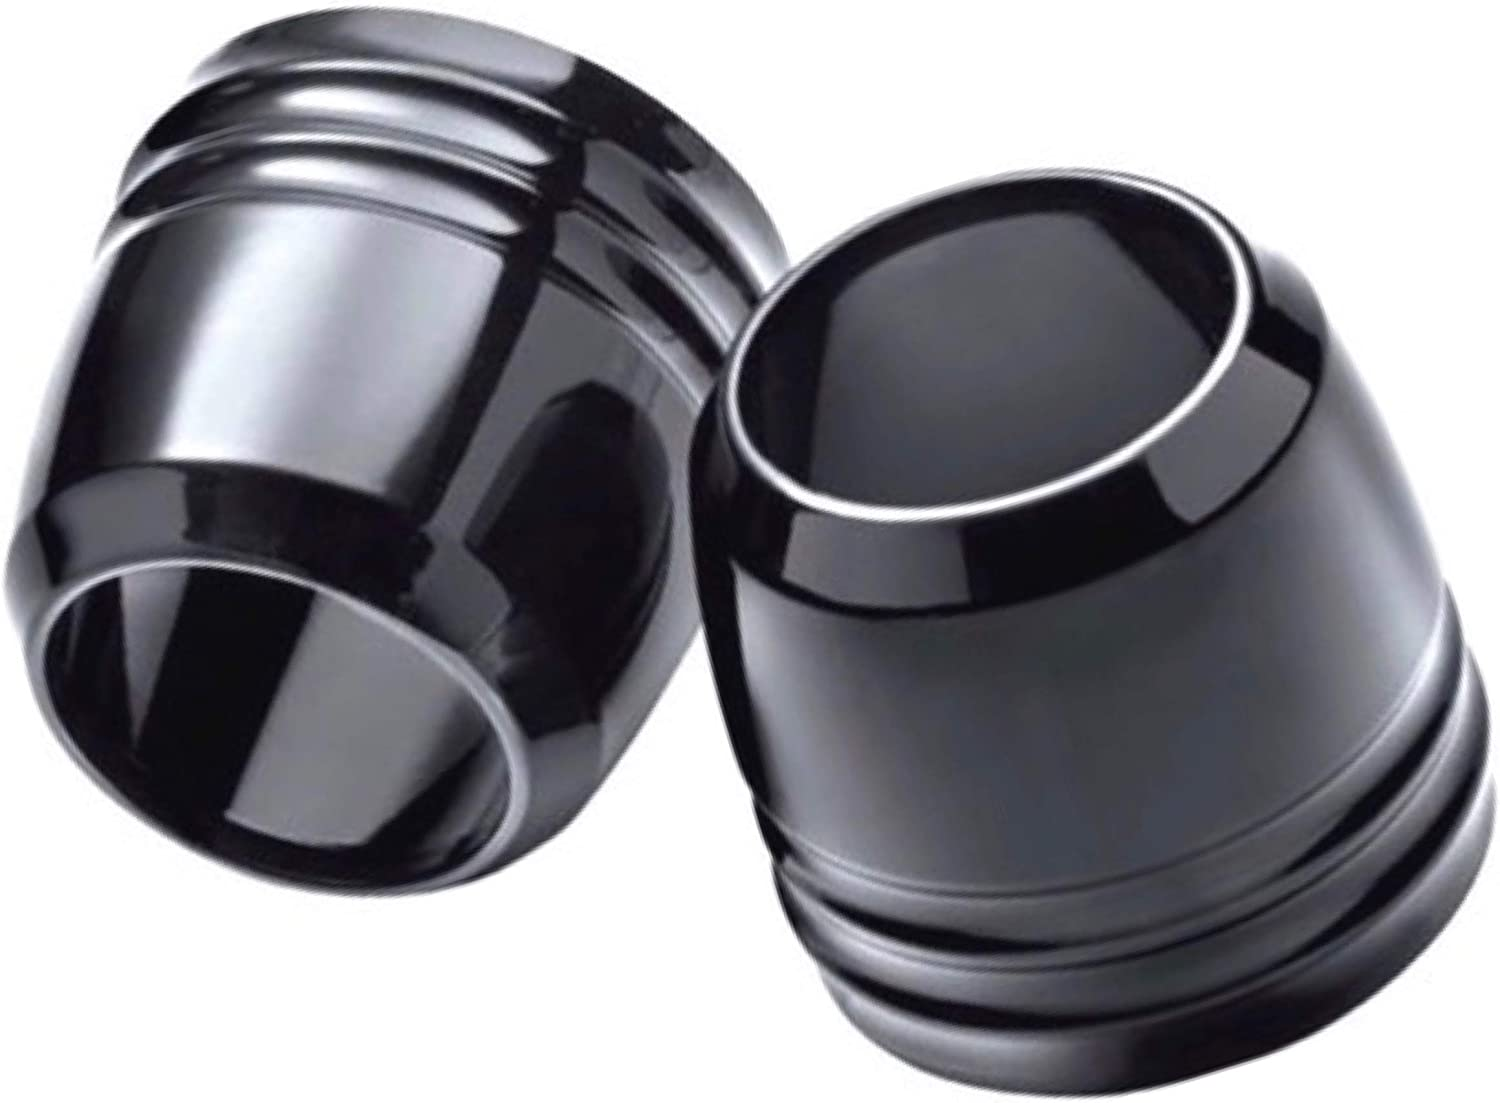 Gloss Black Billet Front Forks Boot Fork Slider Dust Covers Fit Harley Davidson Dyna like Street Fat Bob Wide Glide Low Rider S Super Custom Years 2006-2017 ref 45800014 Boots Cap Caps Cover Sliders